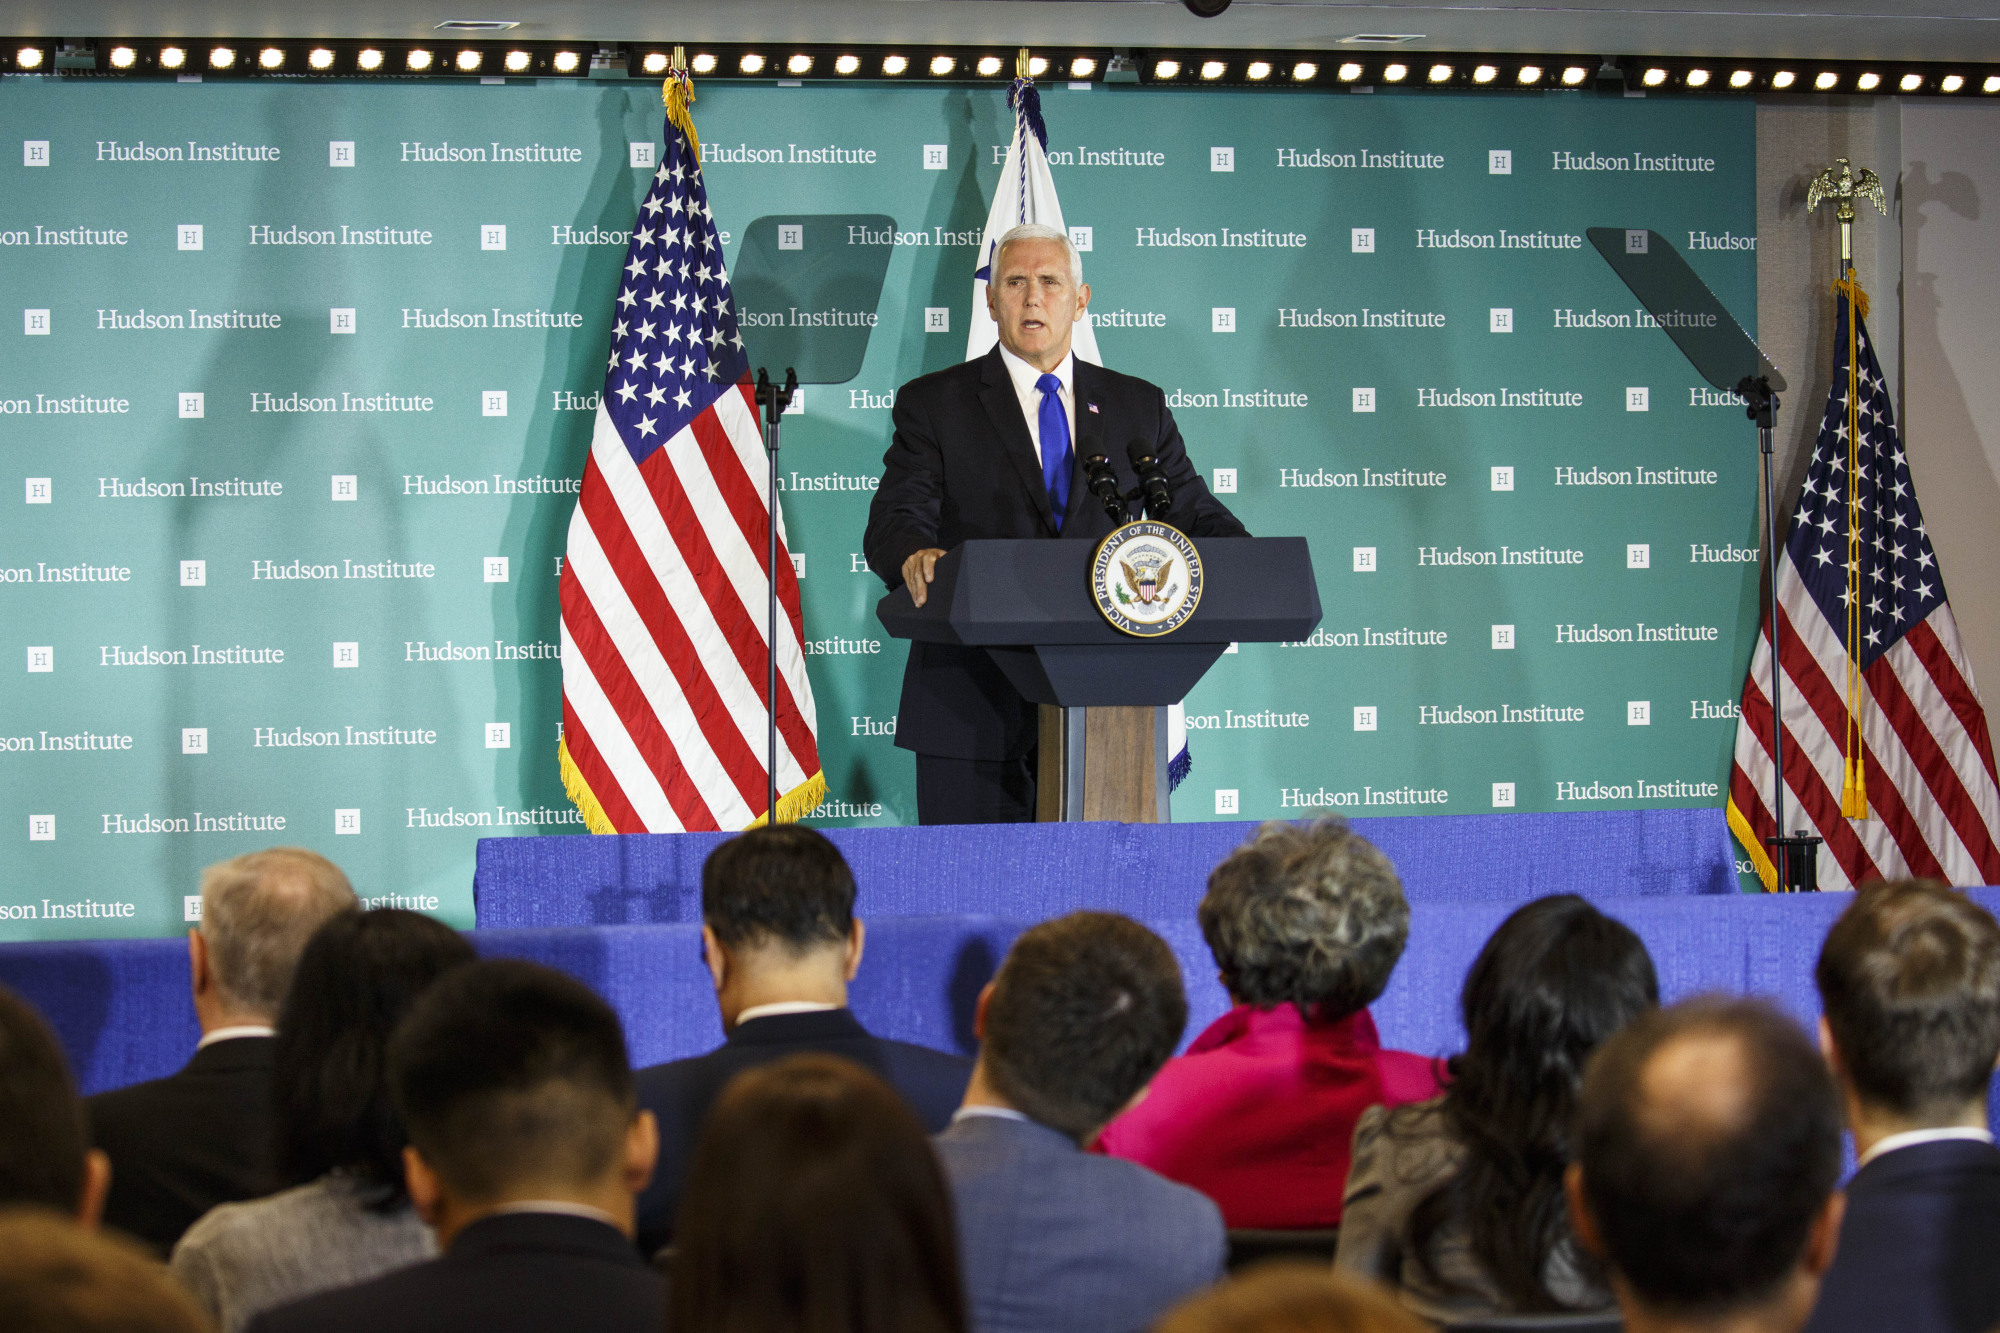 U.S. Vice President Mike Pence speaks Oct. 4 at the Hudson Institute in Washington. He attacked Beijing's 'Made in China 2025' policy, which aims to make China the world's AI  leader, and Chinese theft of American technology. | BLOOMBERG